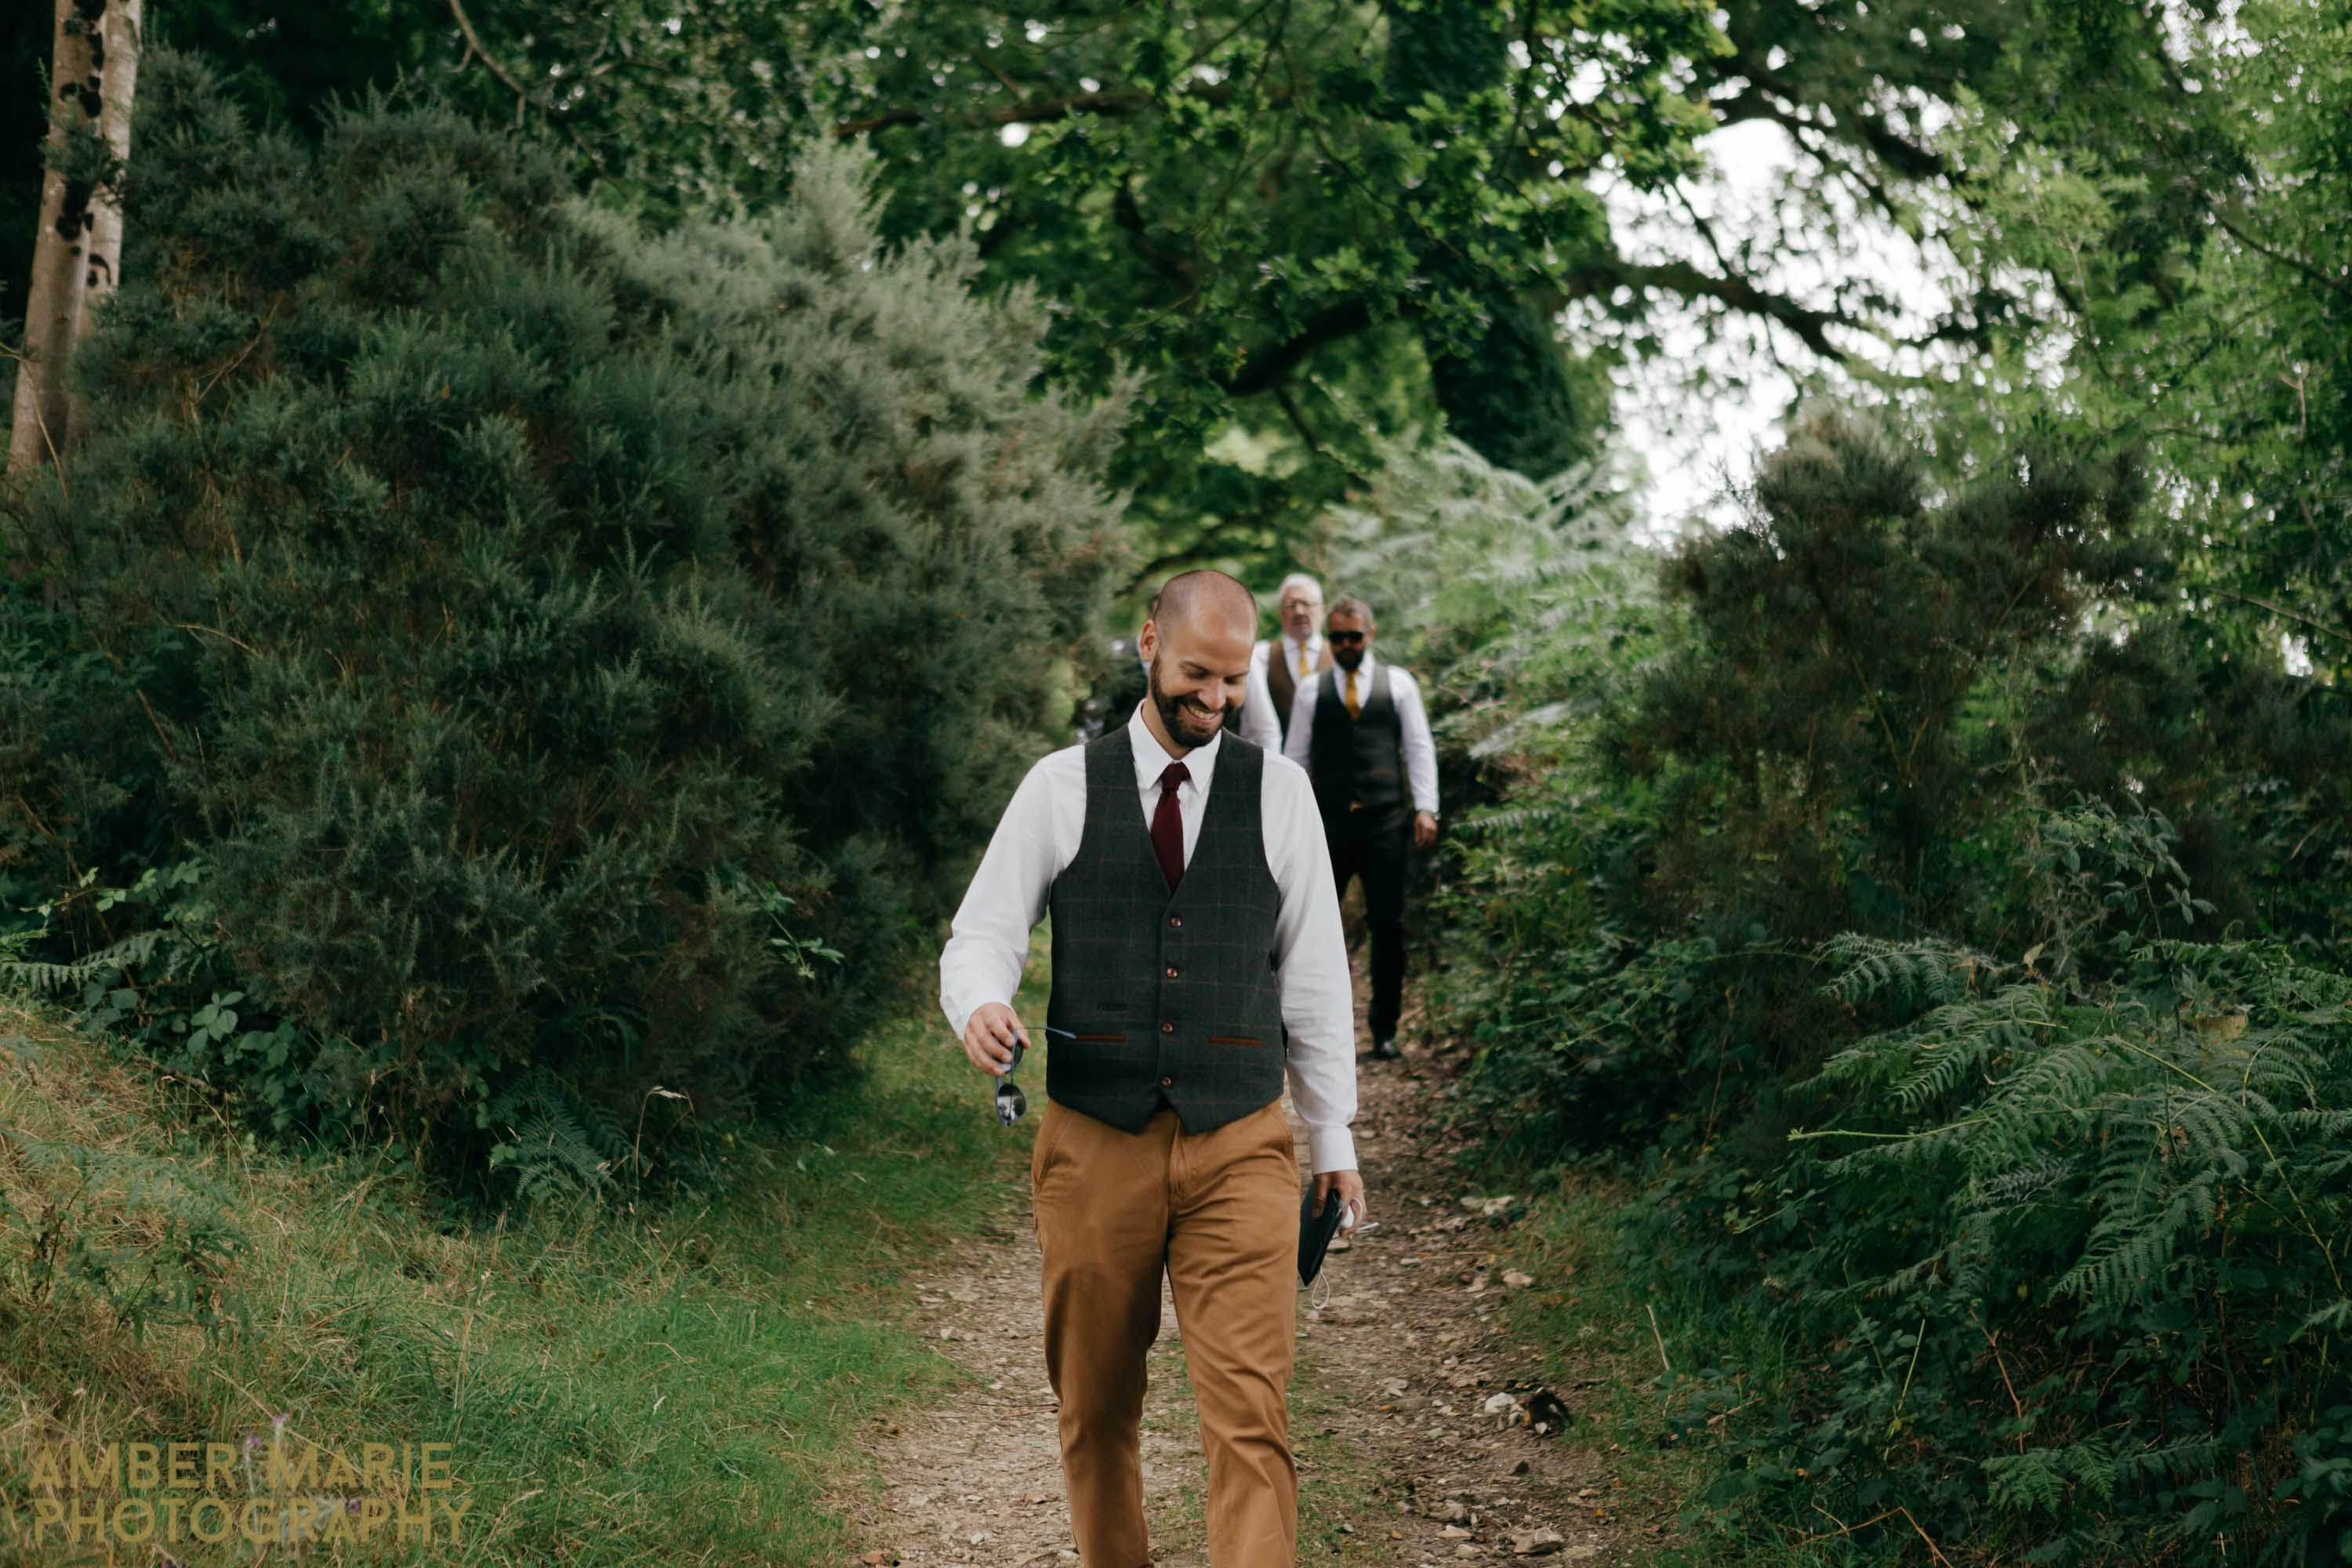 River cottage creative wedding photography